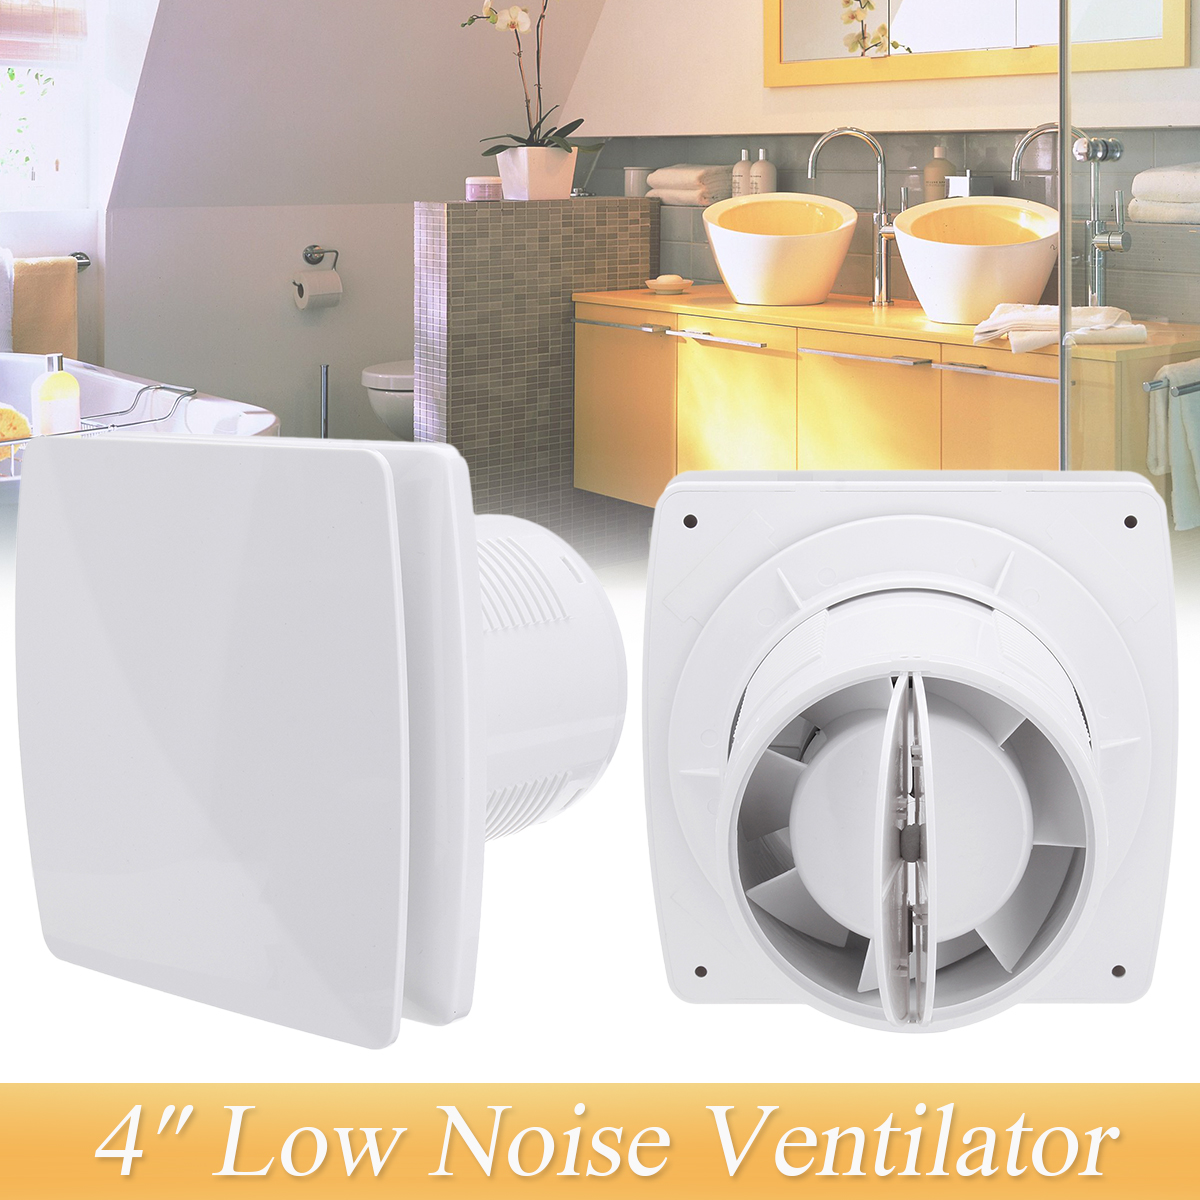 4 In Line Air Blower Ventilator 220V Low Noise Bathroom Ventilation Fan Hotel Wall Fan Silent Extractor Exhaust Fan for Kitchen xiaomi vh fan stylish double blade mute cycle desktop silent fan low noise touch sensor switch and second gear adjustable